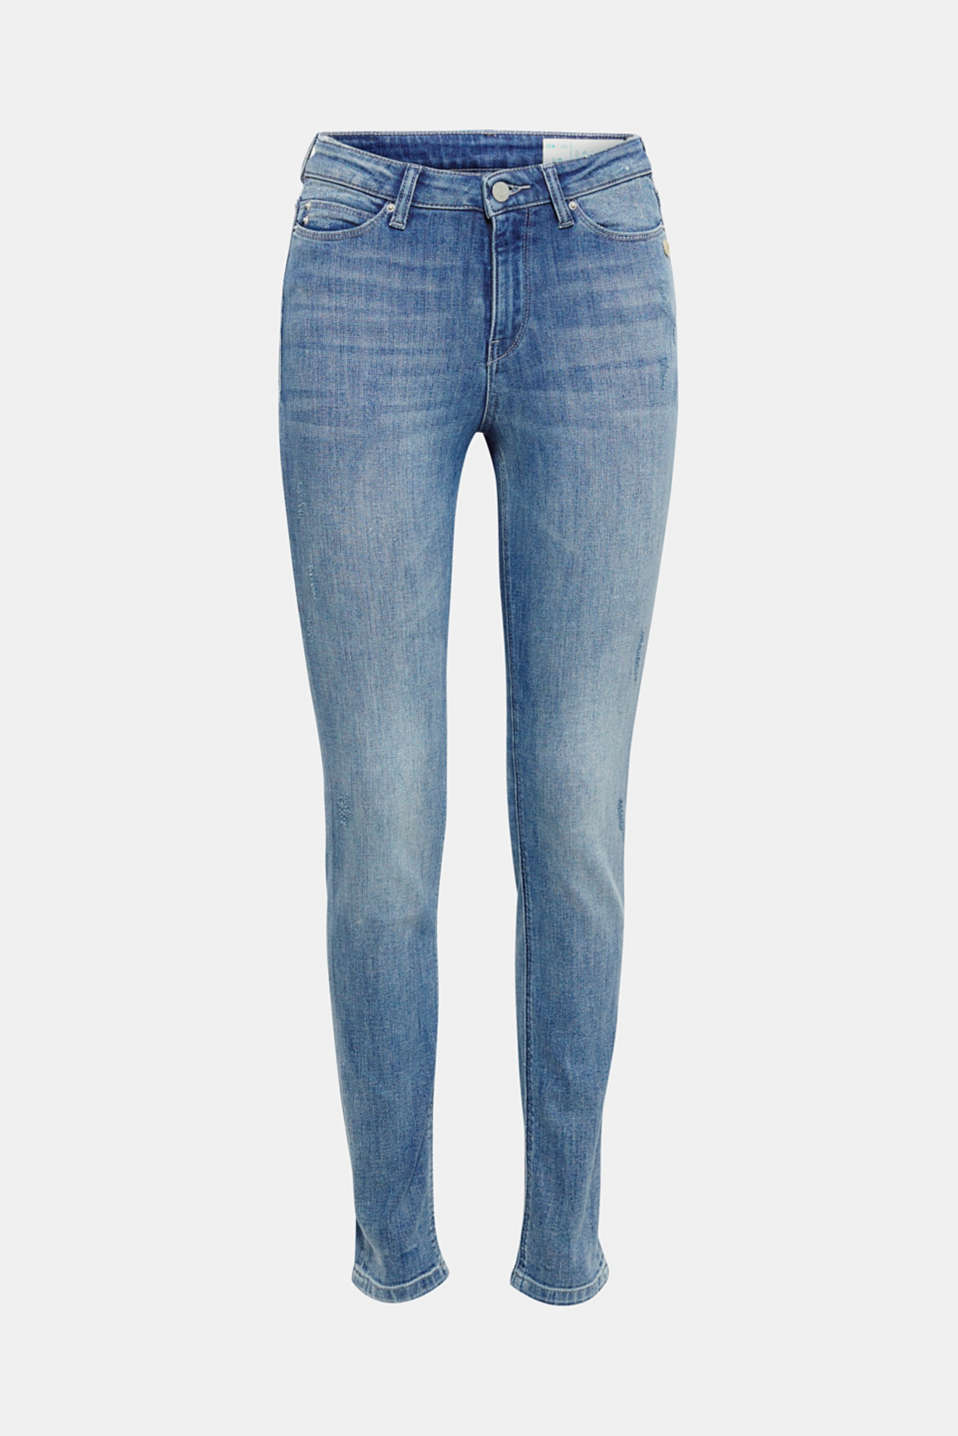 These slim-fitting stretch jeans with a high waist and vintage effects make the perfect companion for every day!